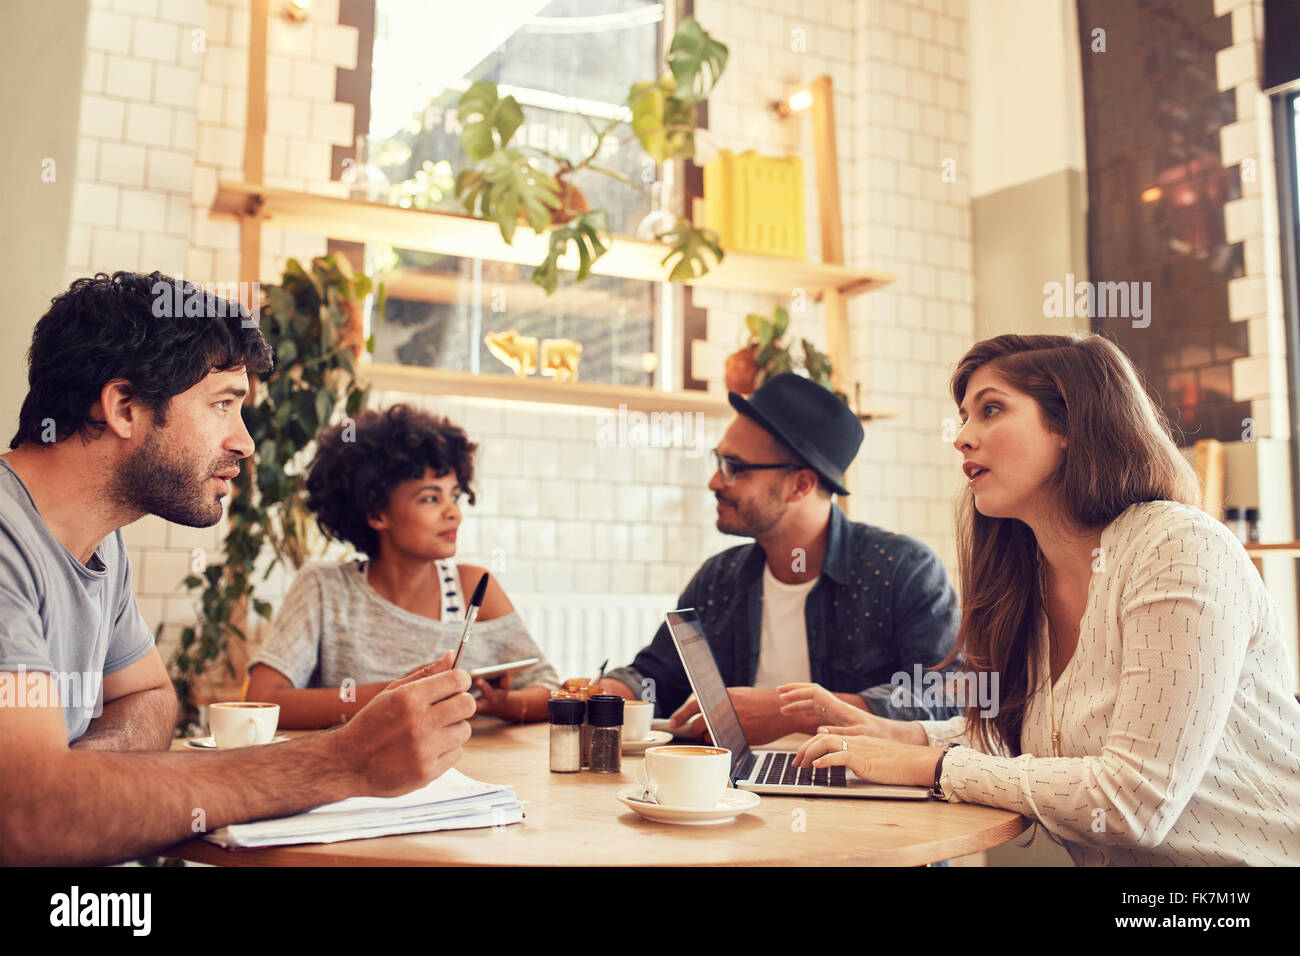 Portrait of young people sitting in a coffee shop with laptop and talking. Young men and women discussing business - Stock Image